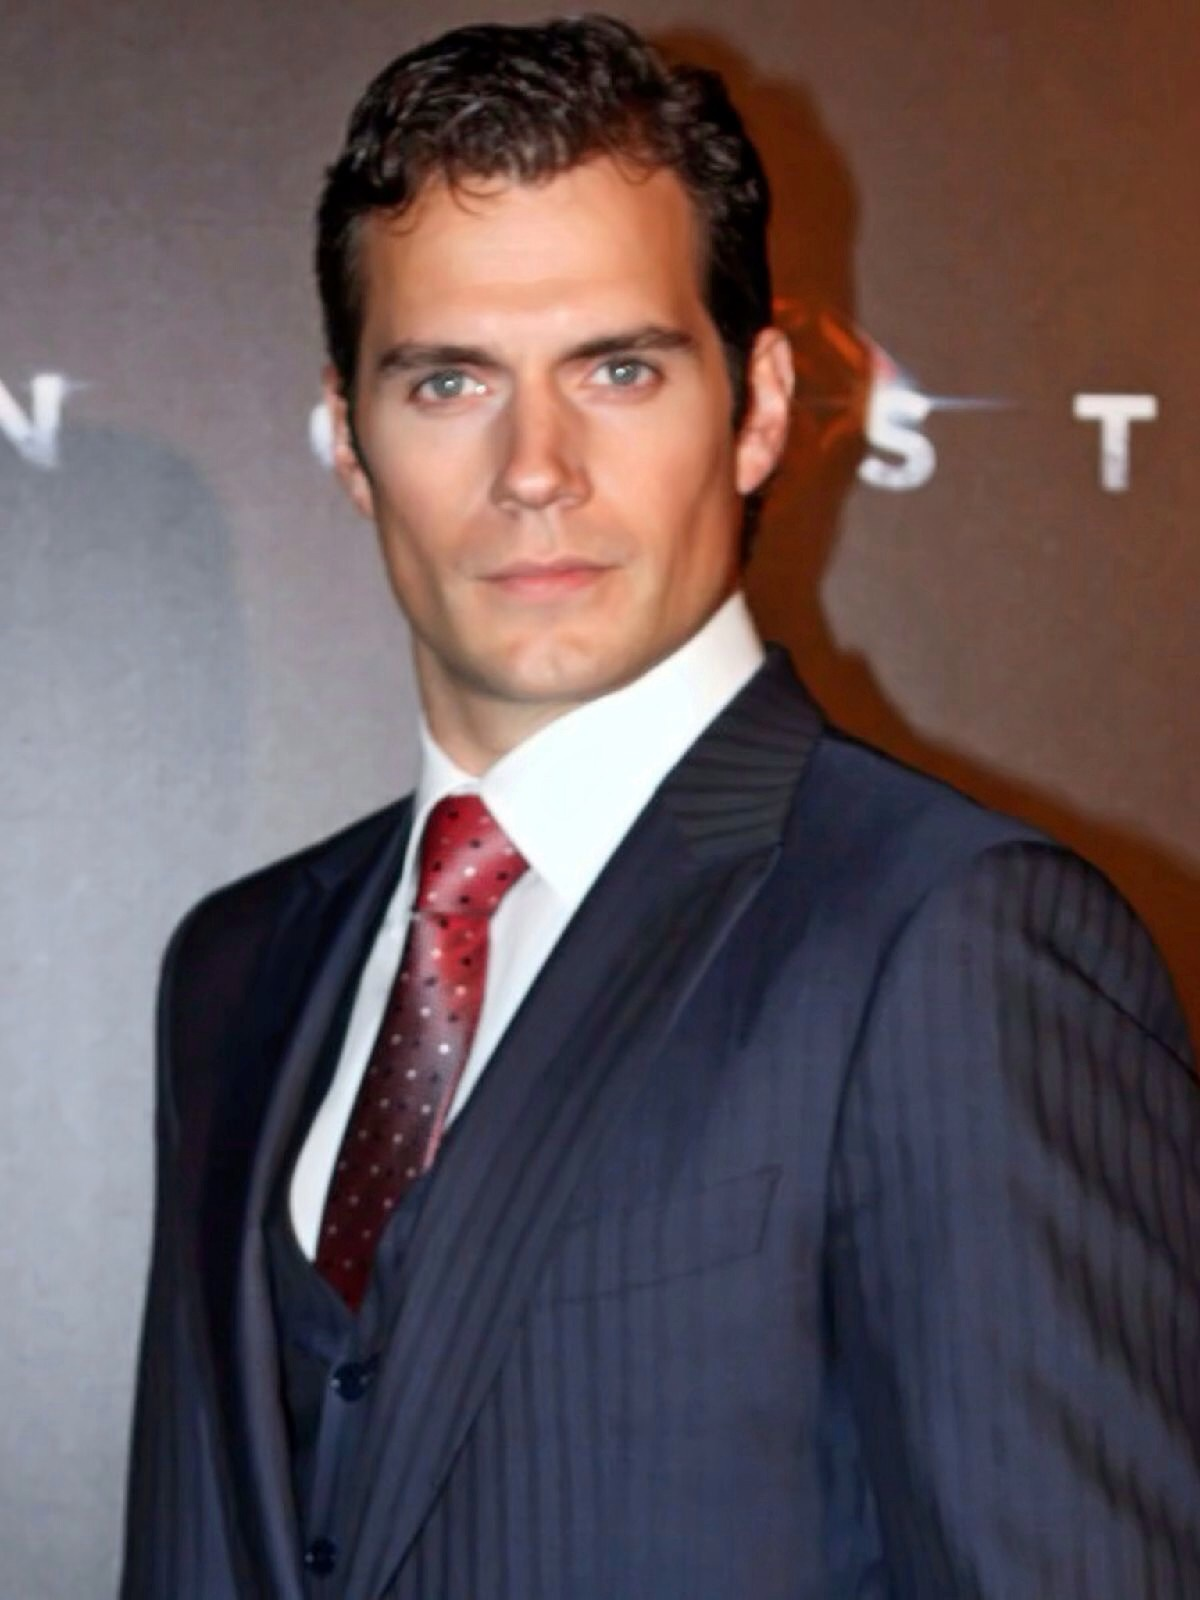 File Henry Cavill 3 2013 Cropped Jpg Wikimedia Commons